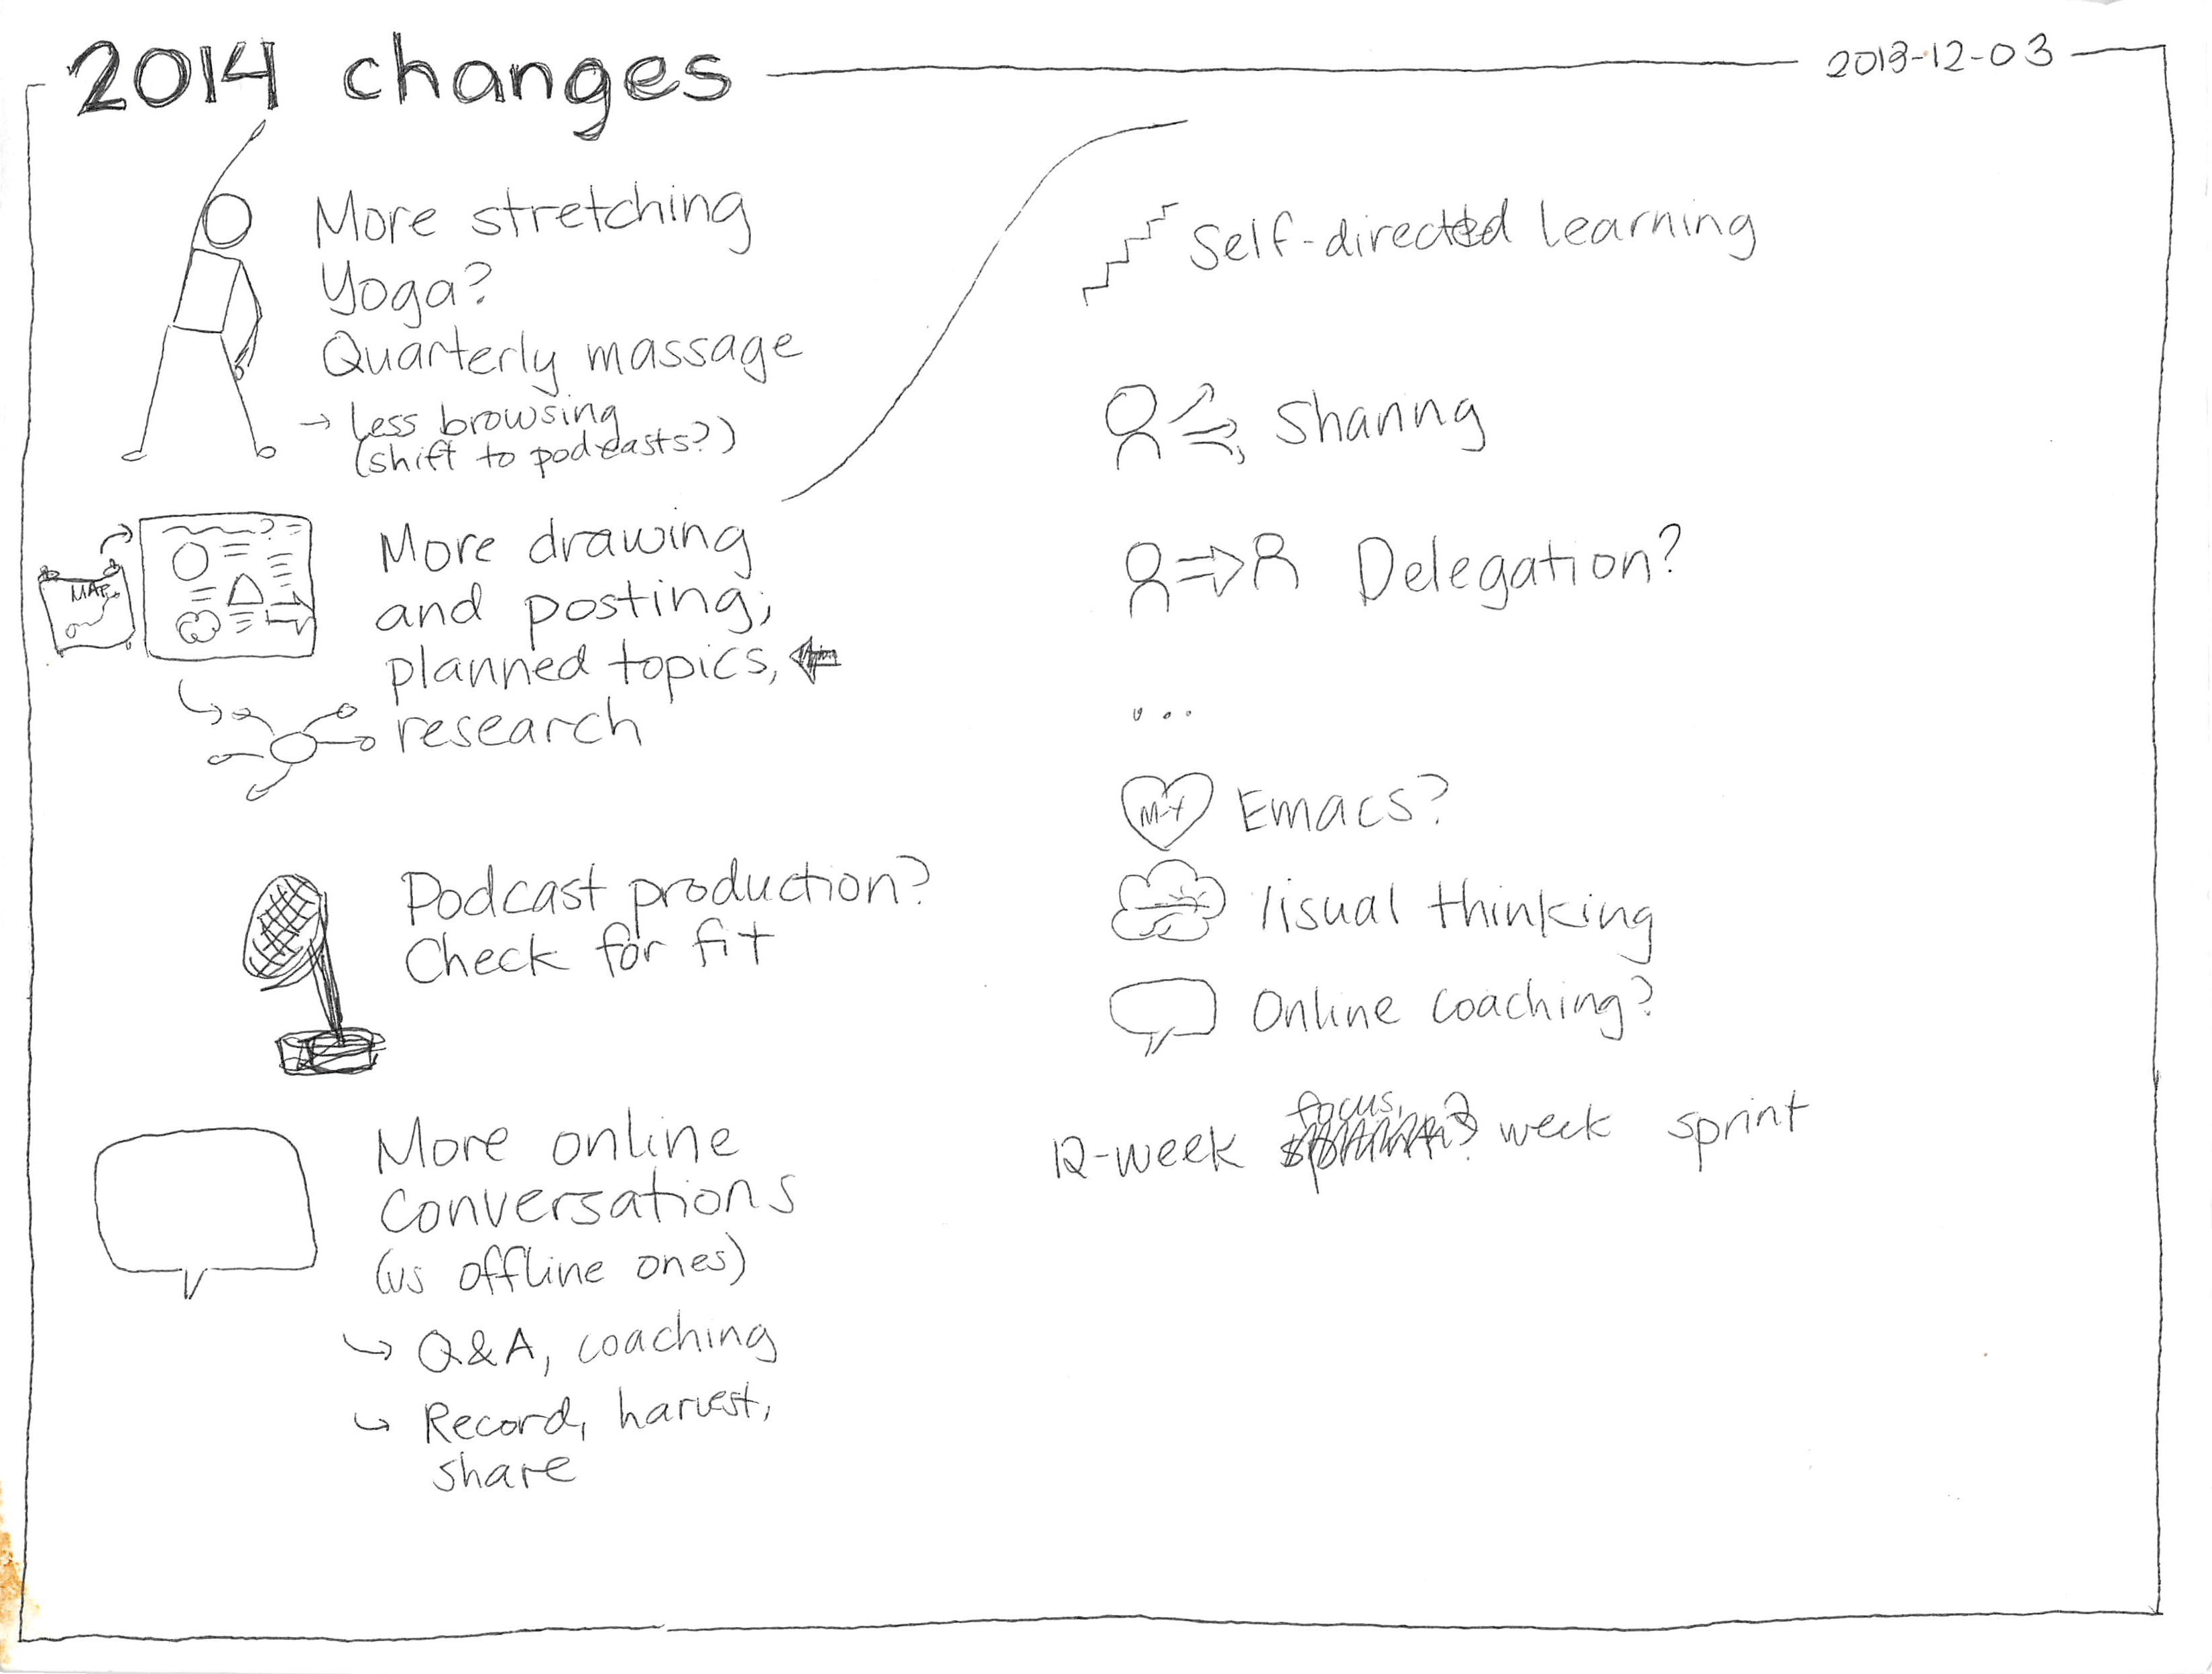 2013-12-03 2014 Changes #plans.png